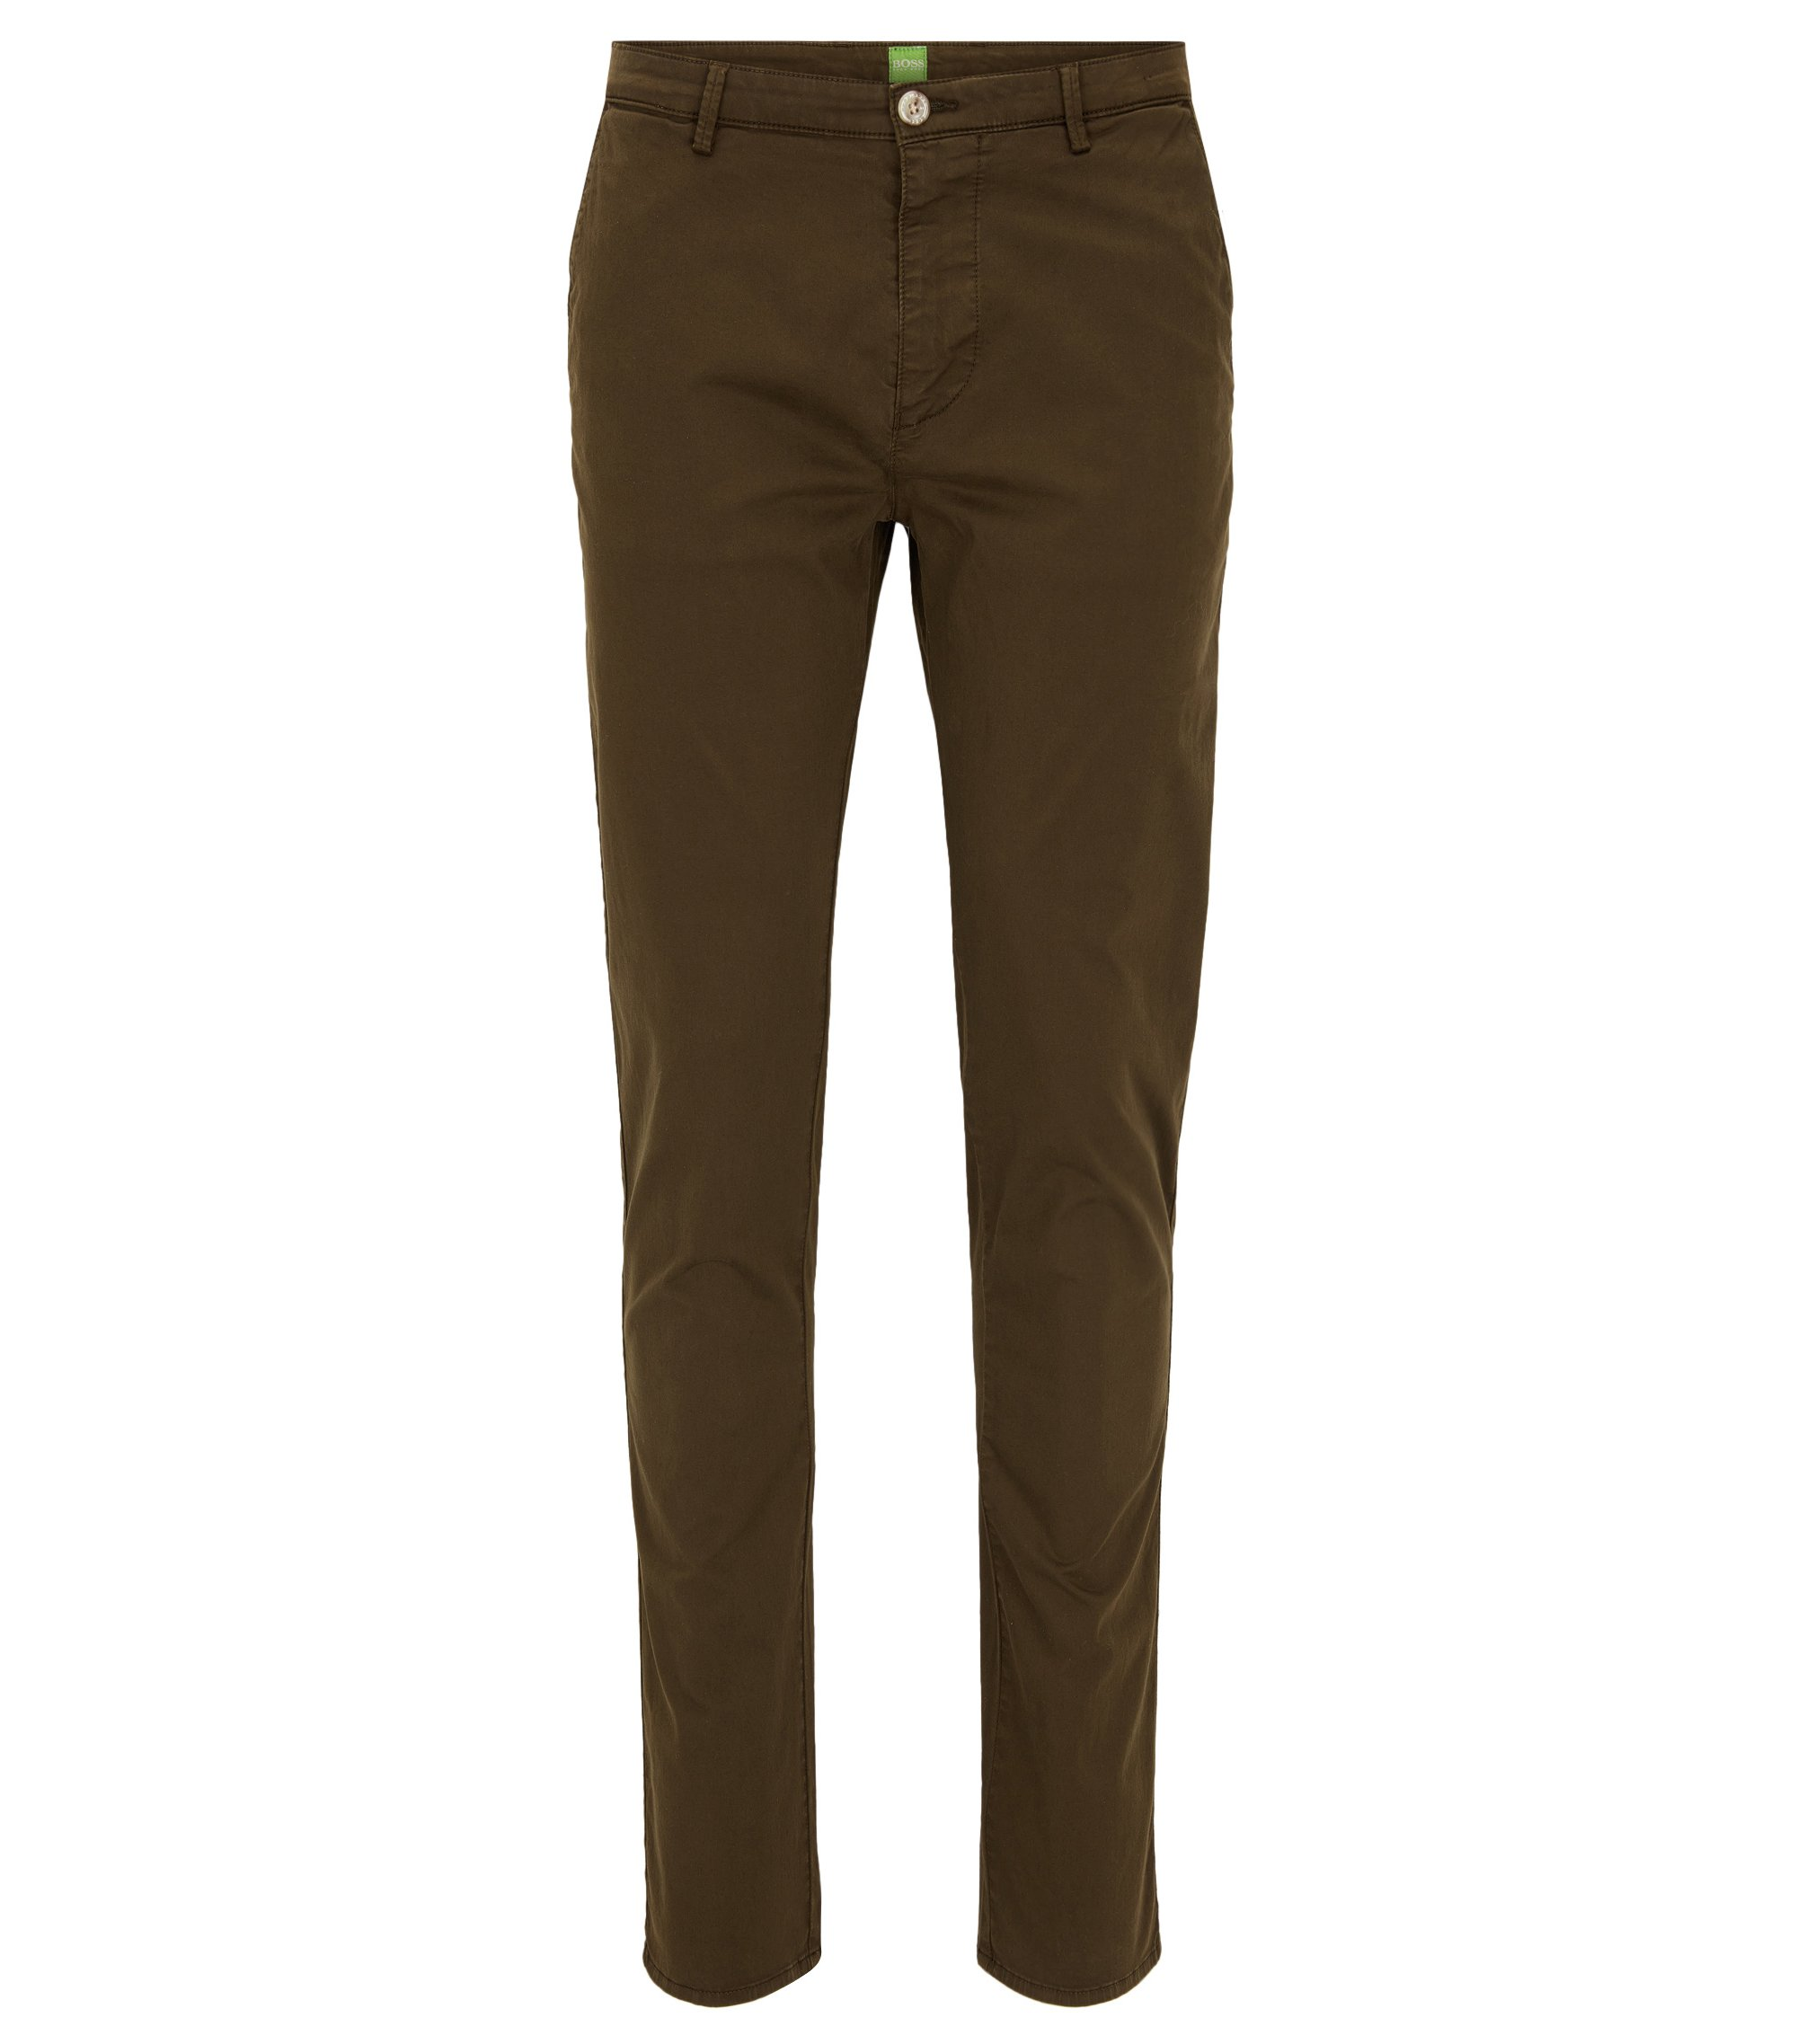 Pantalon Slim Fit en coton Pima stretch, Vert sombre